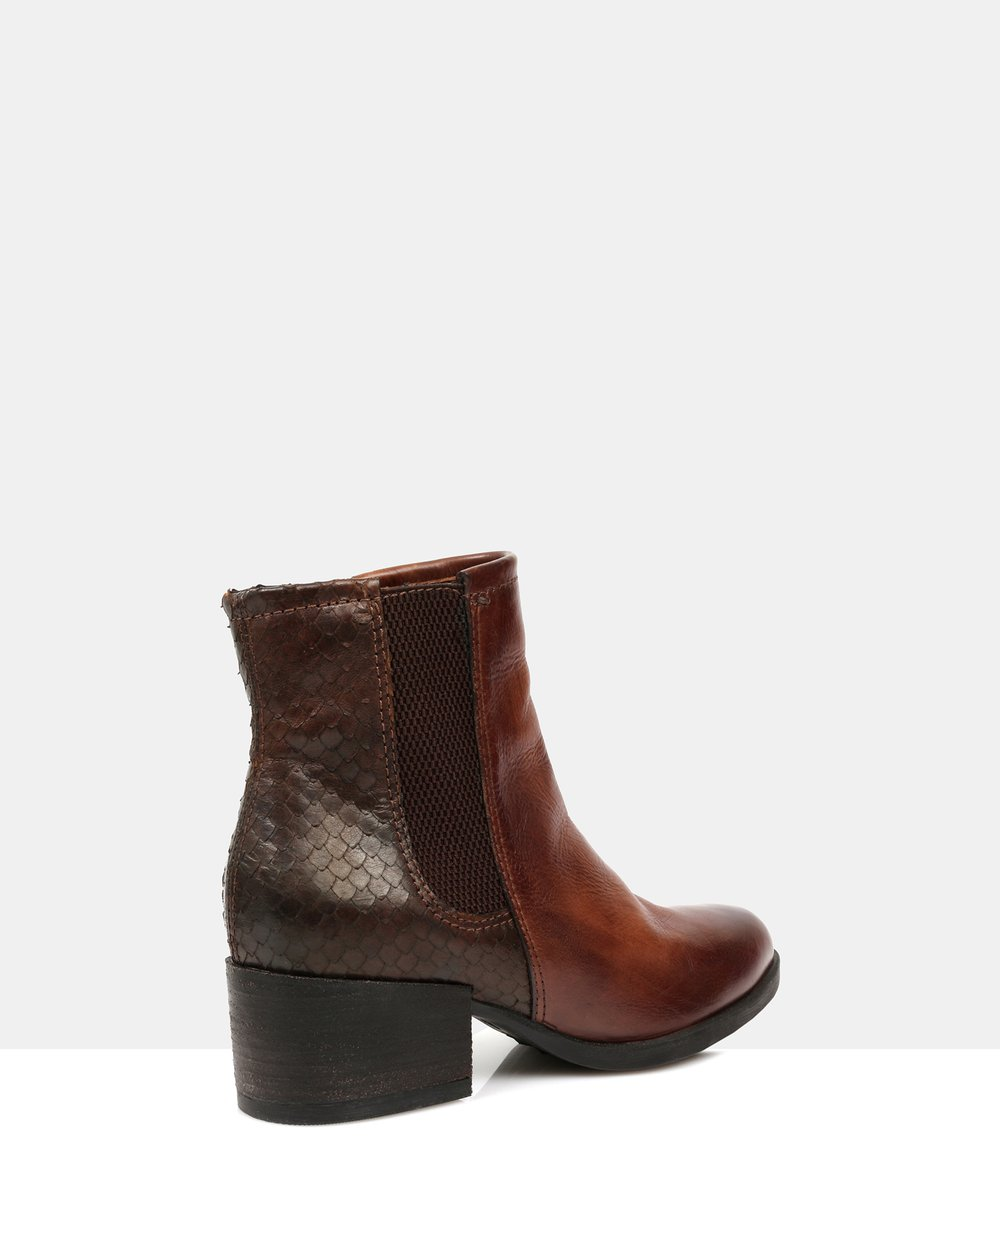 51fae2835a71 Marisa Leather Ankle Boots by Sempre Di Online